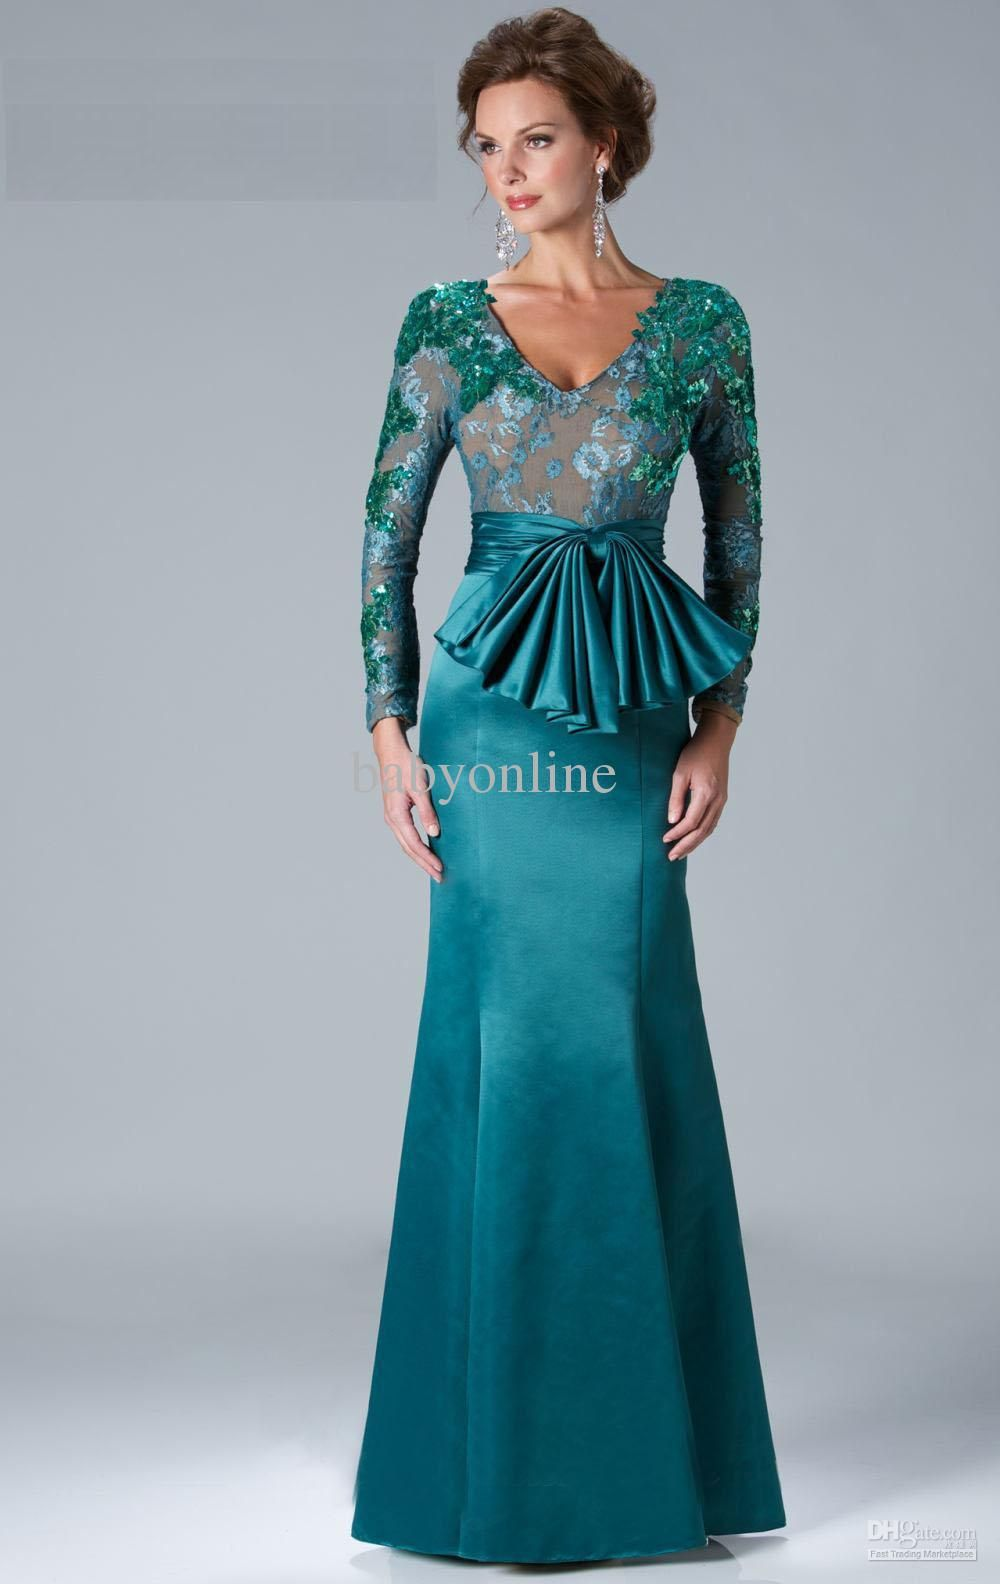 78  images about Evening Dresses on Pinterest - Lace evening gowns ...